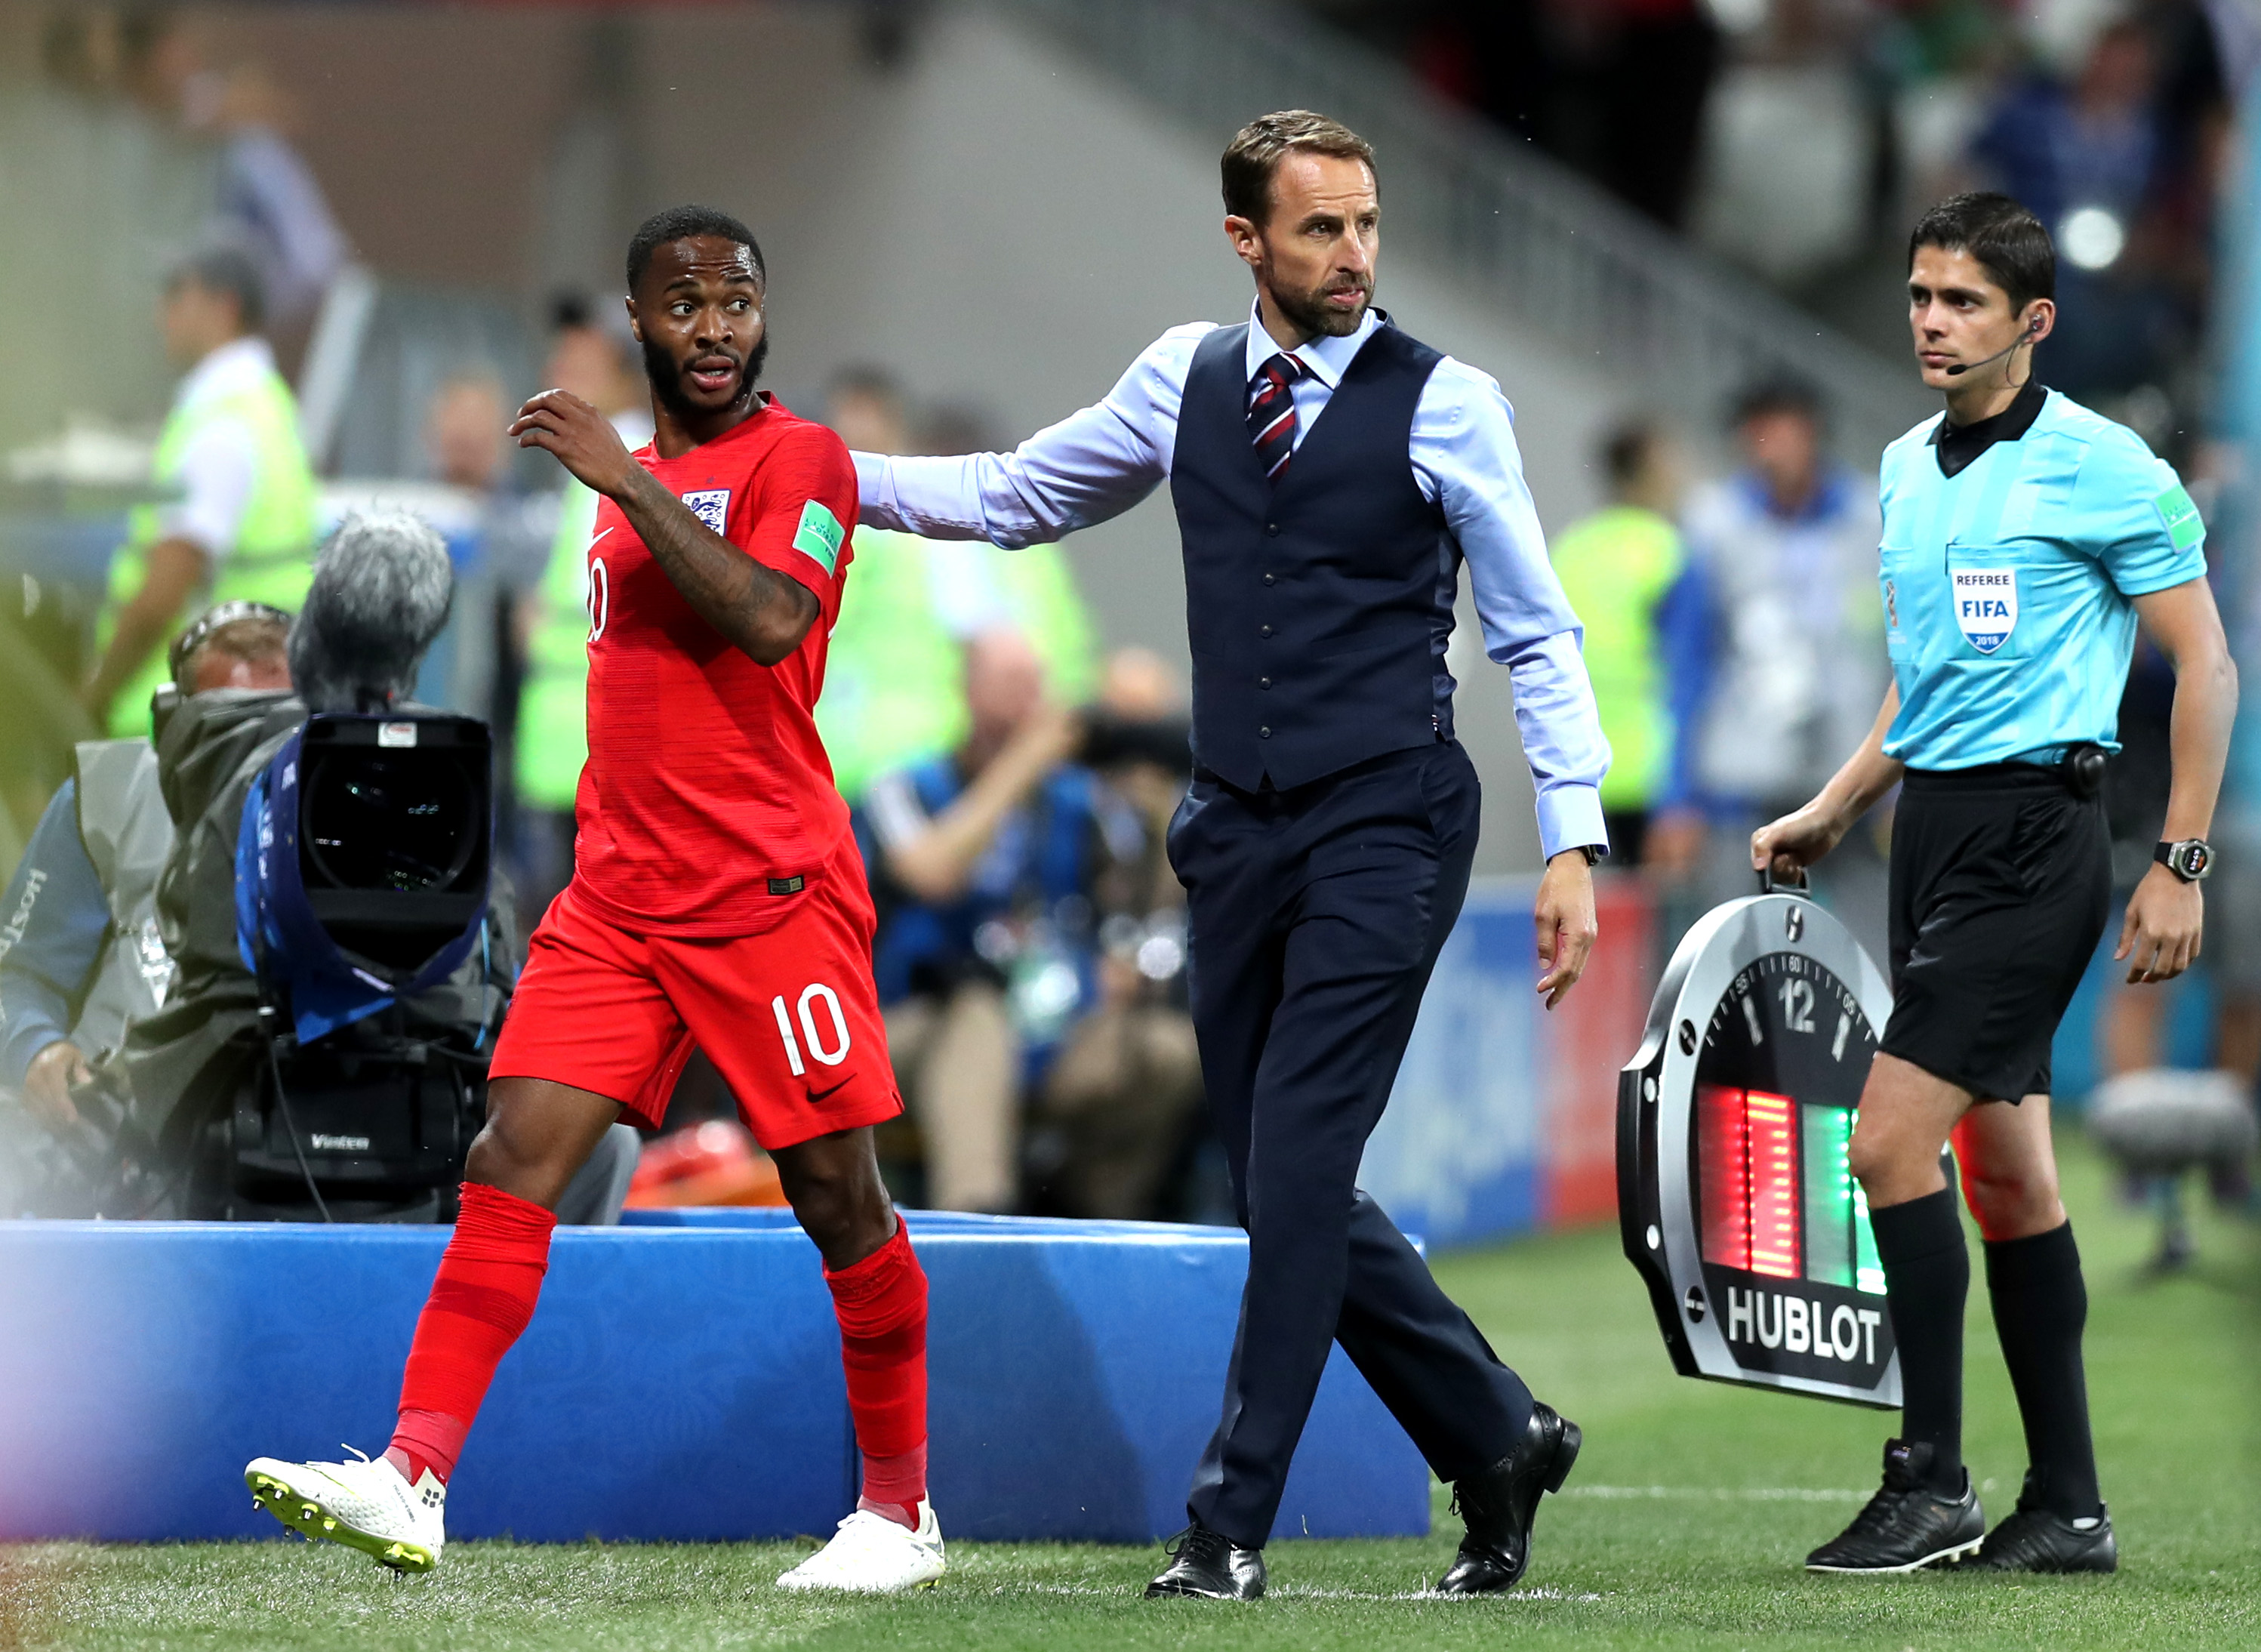 England coach Southgate dislocates shoulder while running